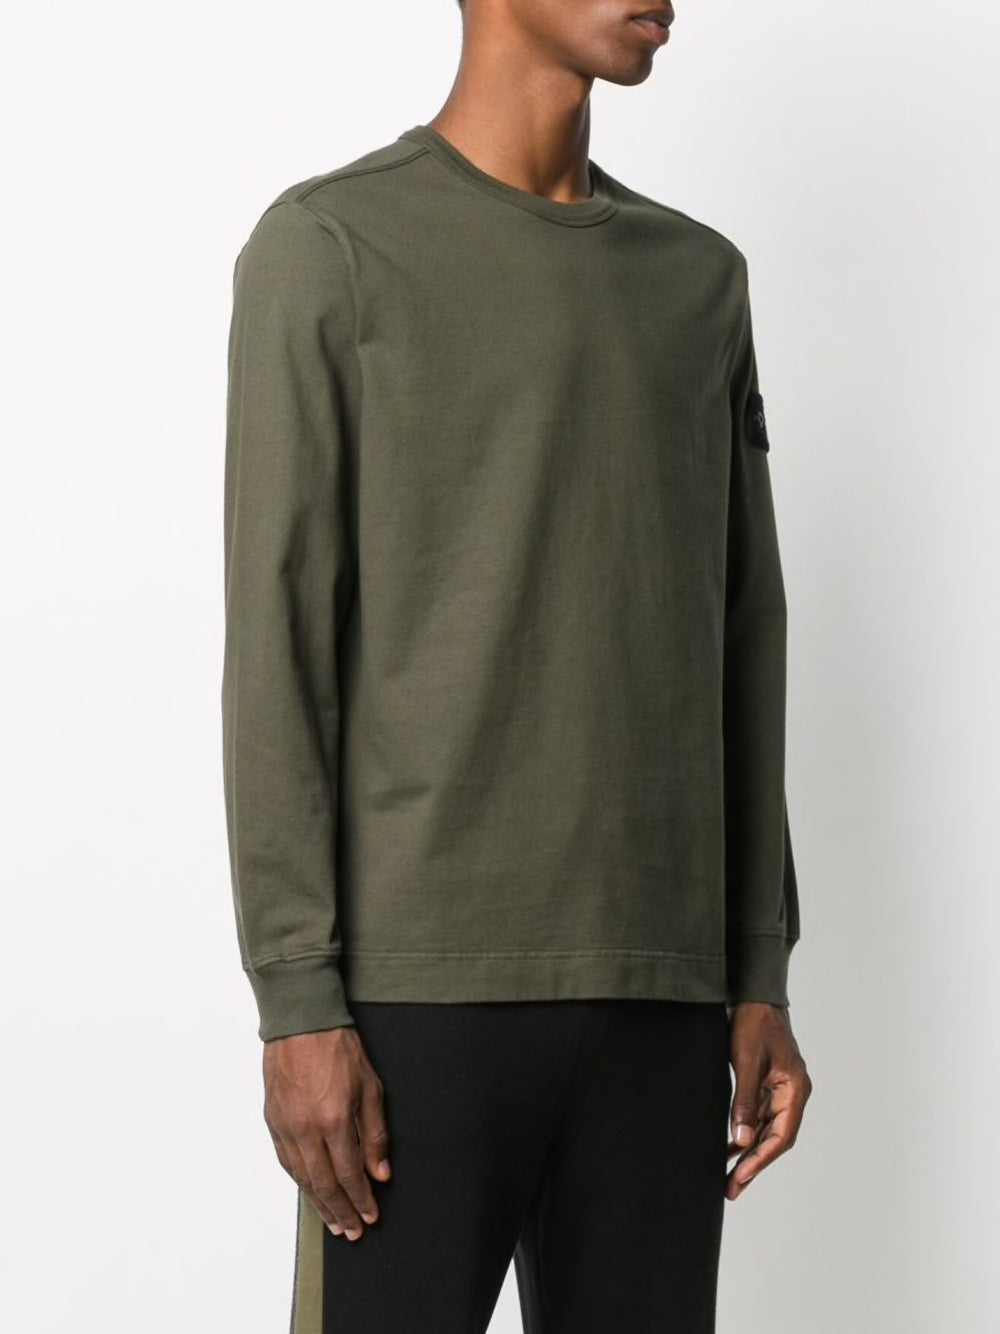 STONE ISLAND MEN SLEEVE LOGO PATCH SWEATSHIRT